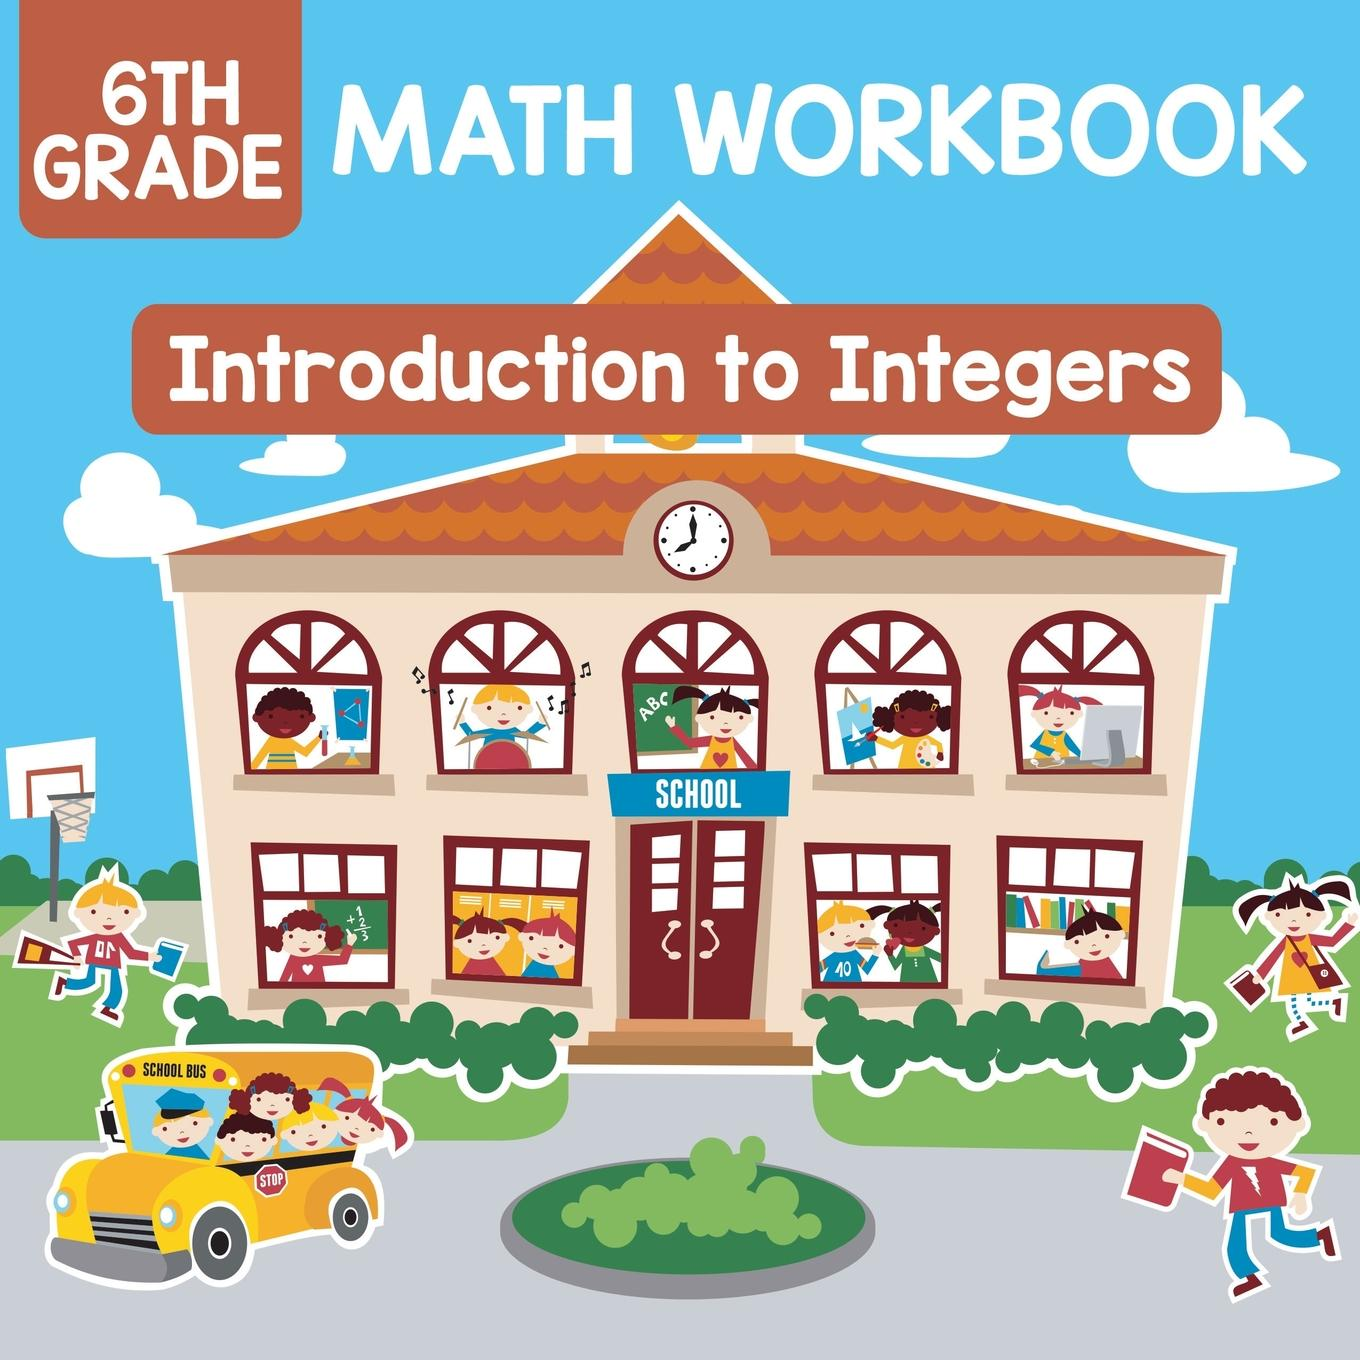 6th Grade Math Workbook Introduction To Integers